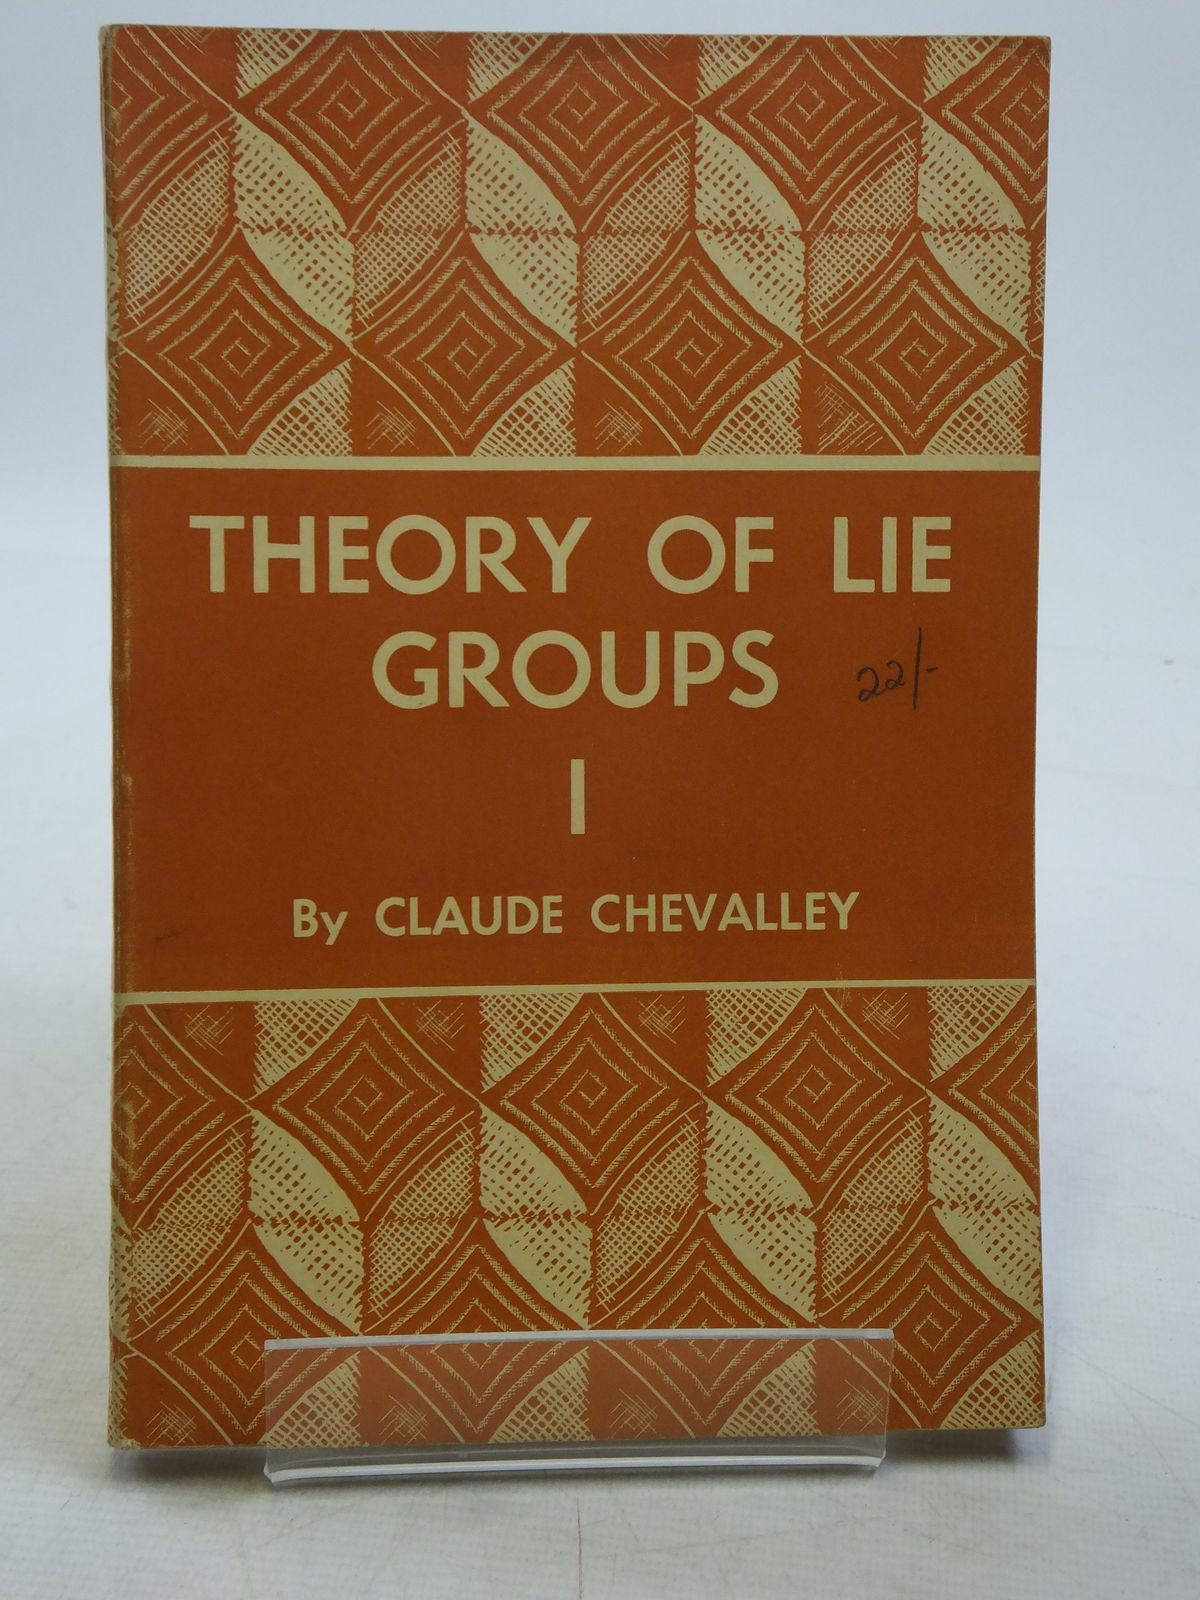 CHEVALLEY THEORY OF LIE GROUPS PDF DOWNLOAD